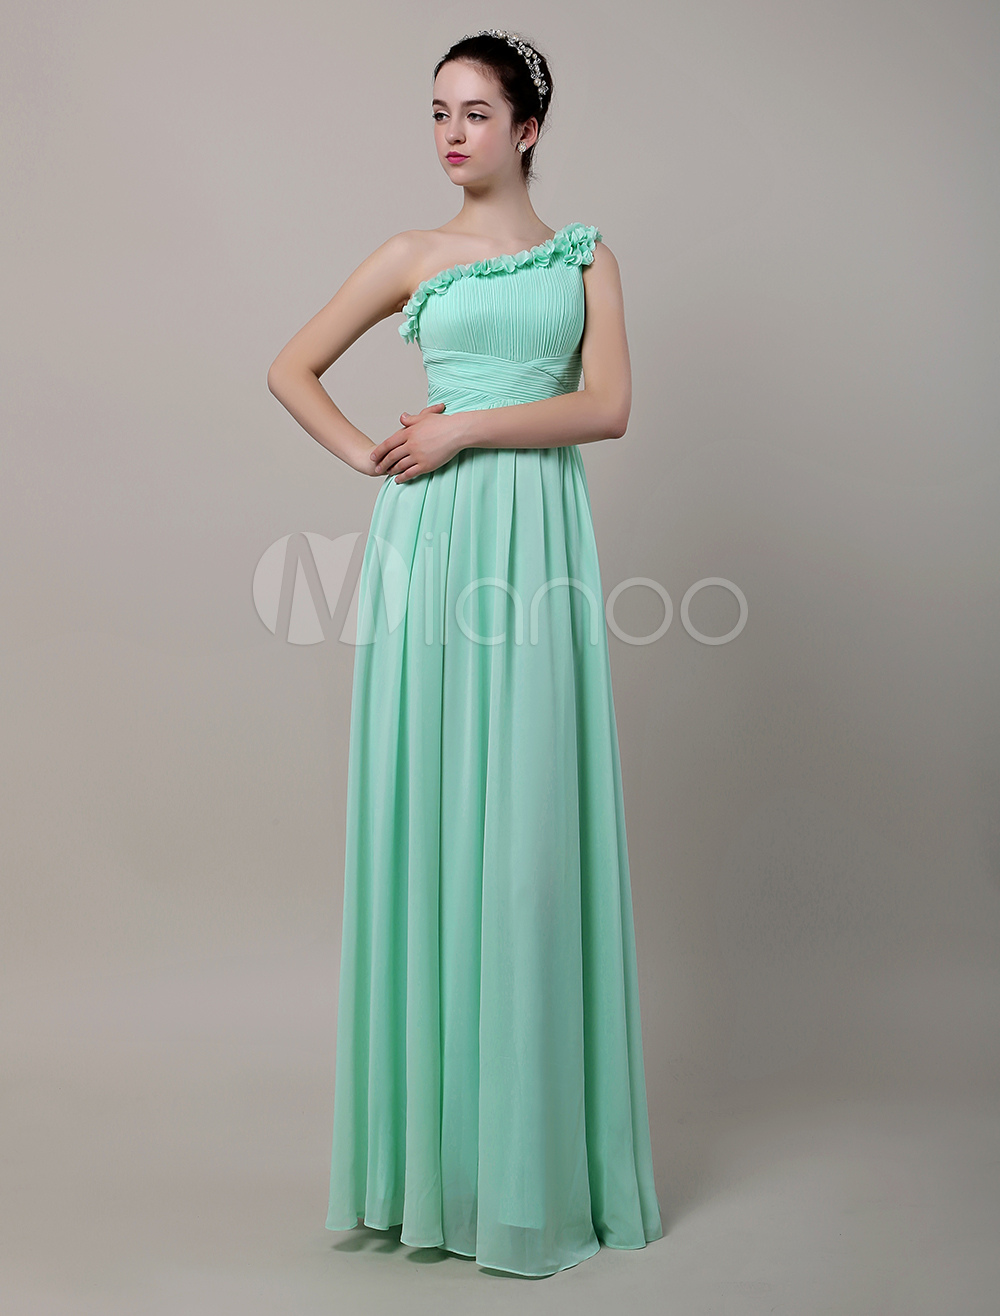 One Shoulder Floor-Length Chiffon Bridesmaid Dress With Flowers